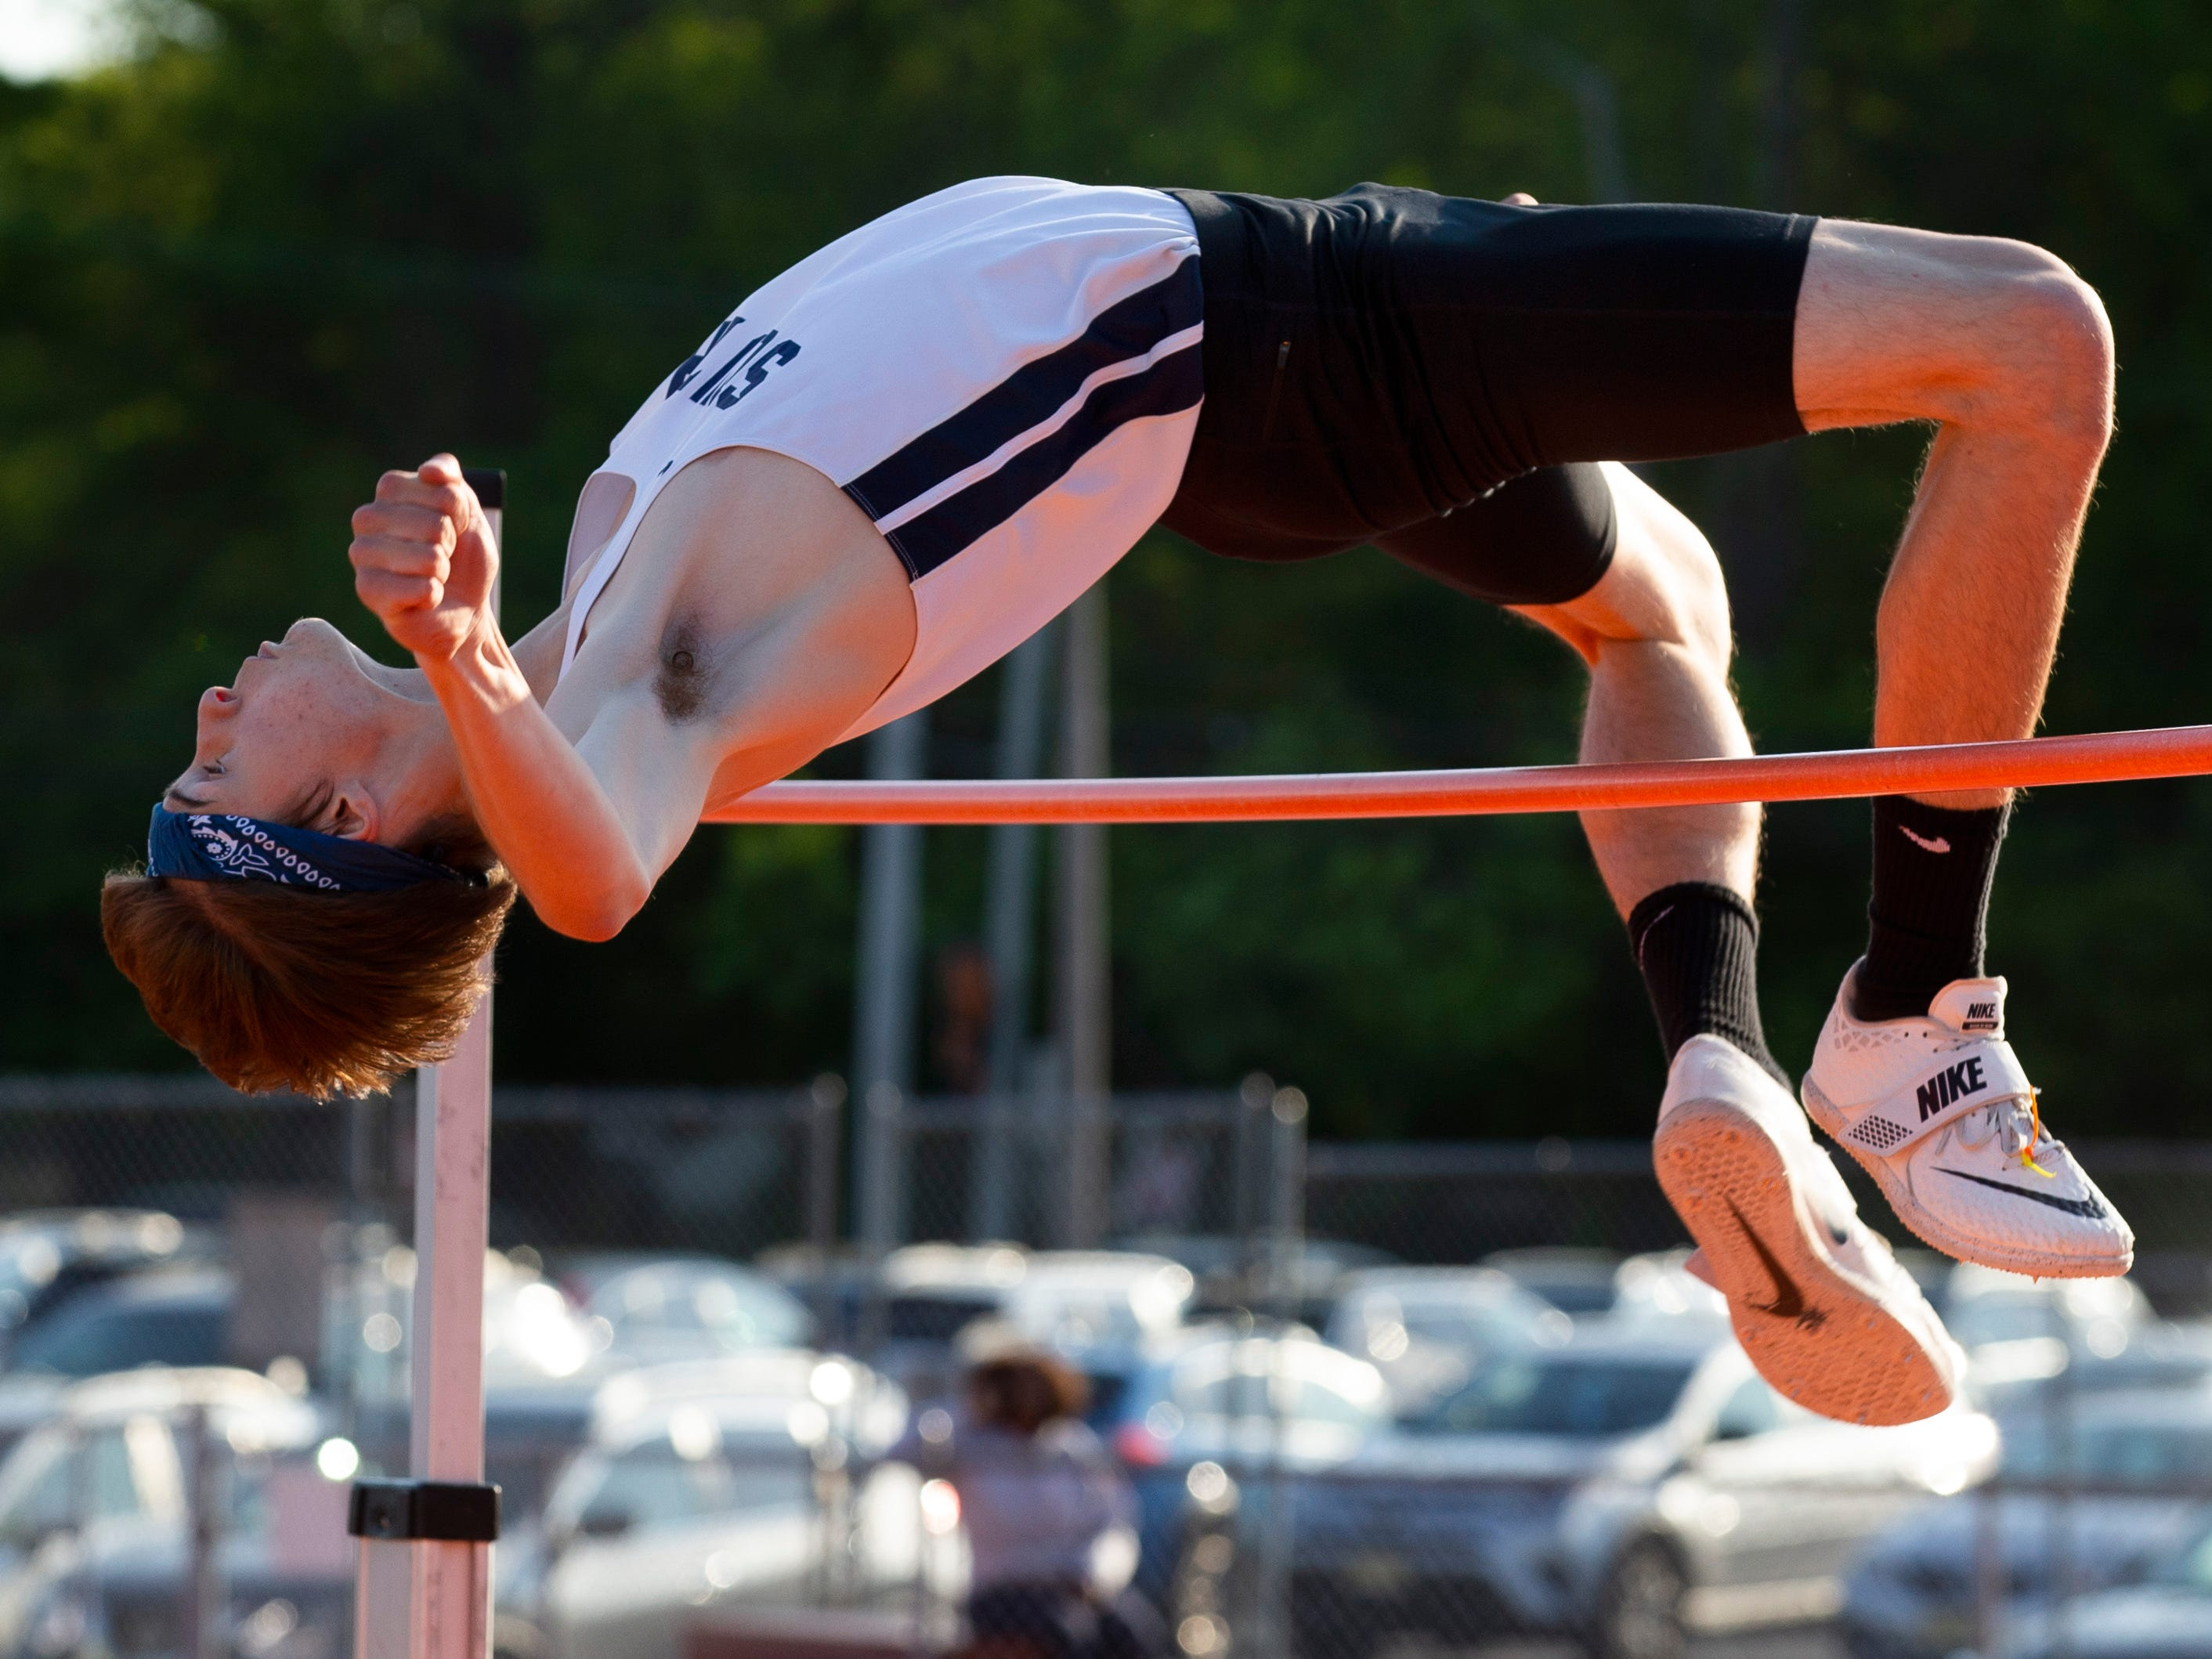 Middletown South's Mark Anselmi competes in high jump at the Monmouth County Track Championship in Middletown on May 8, 2019